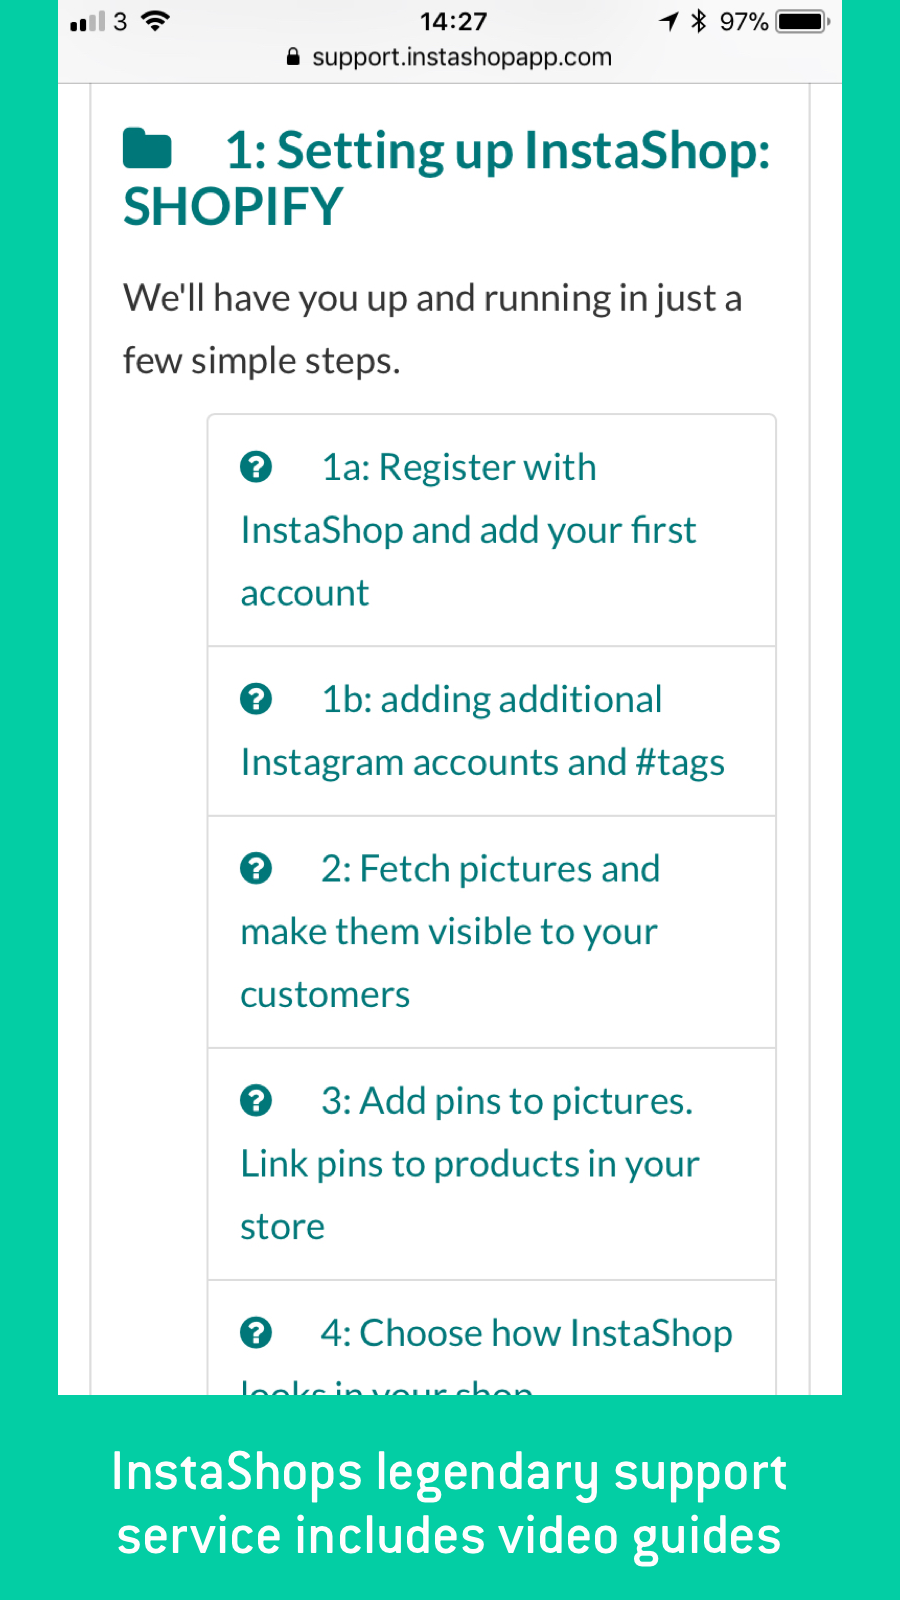 You will always have access to InstaShop's legendary support sys